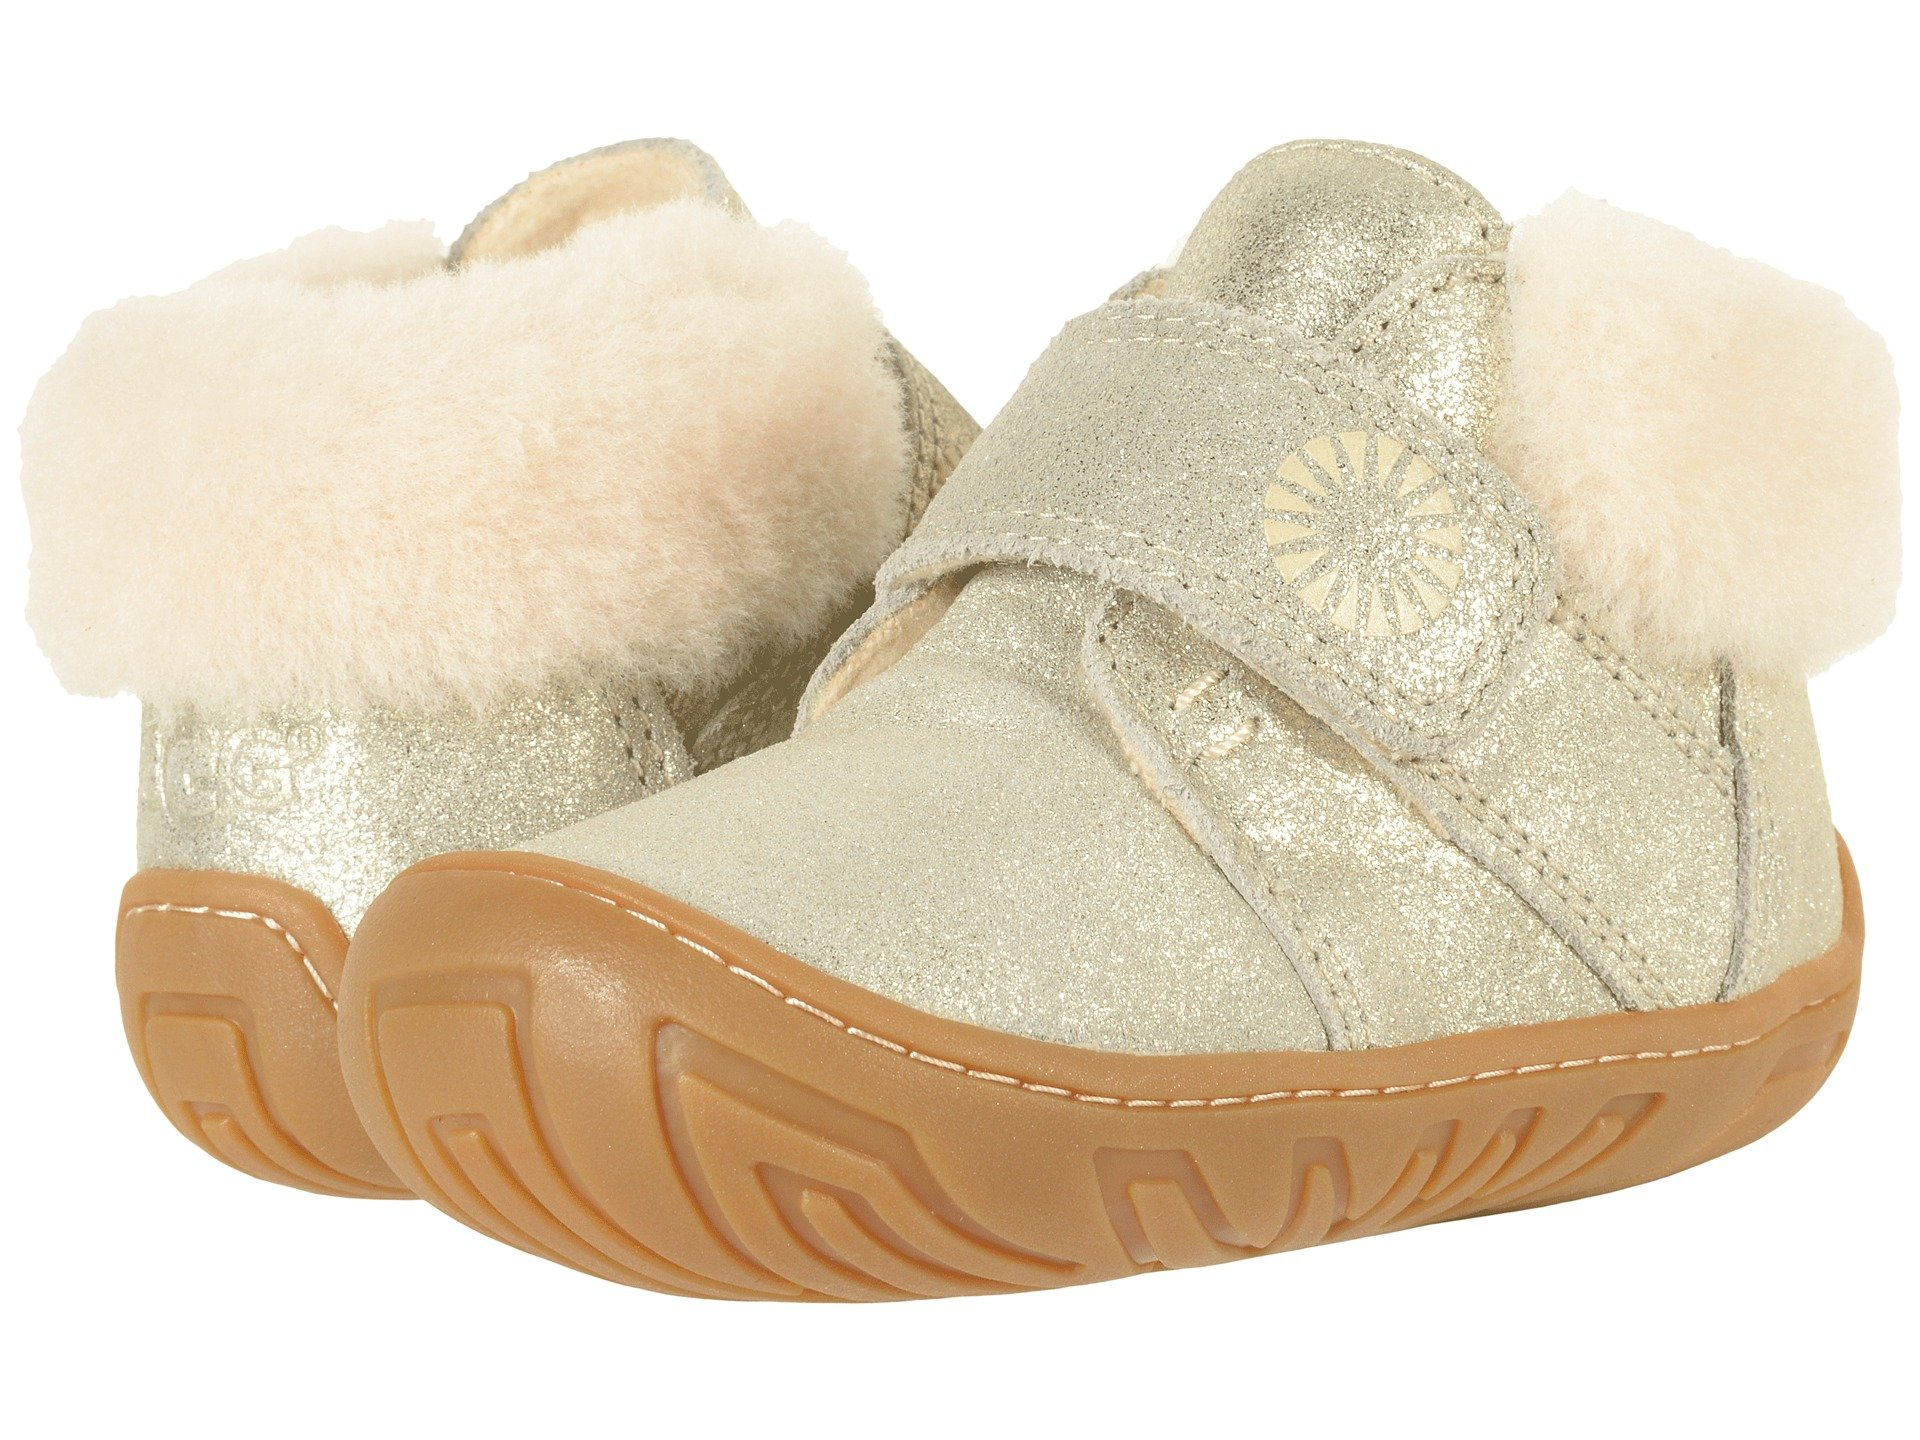 Shoes, Gold, Girls | Shipped Free at Zappos